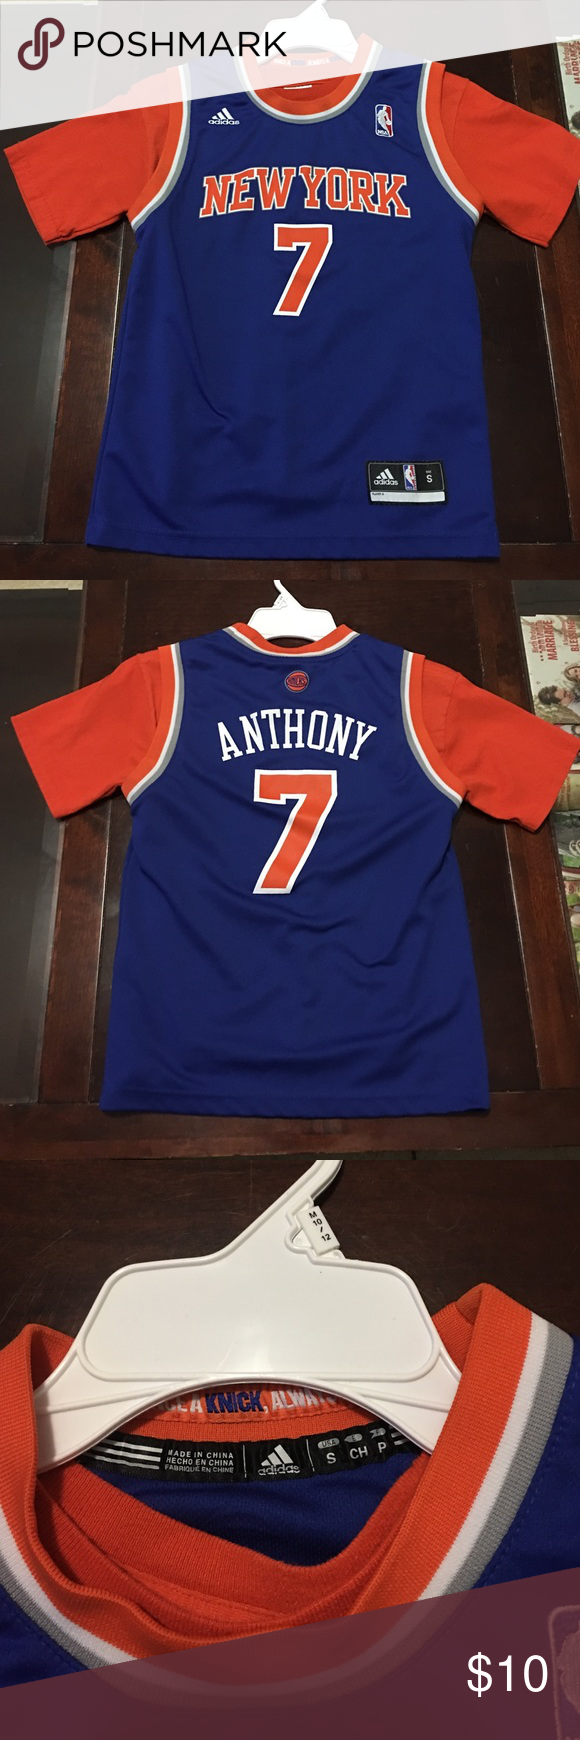 buy popular 05c95 d05cb Carmelo Anthony Jersey Small kids In perfect condition 9/10 ...